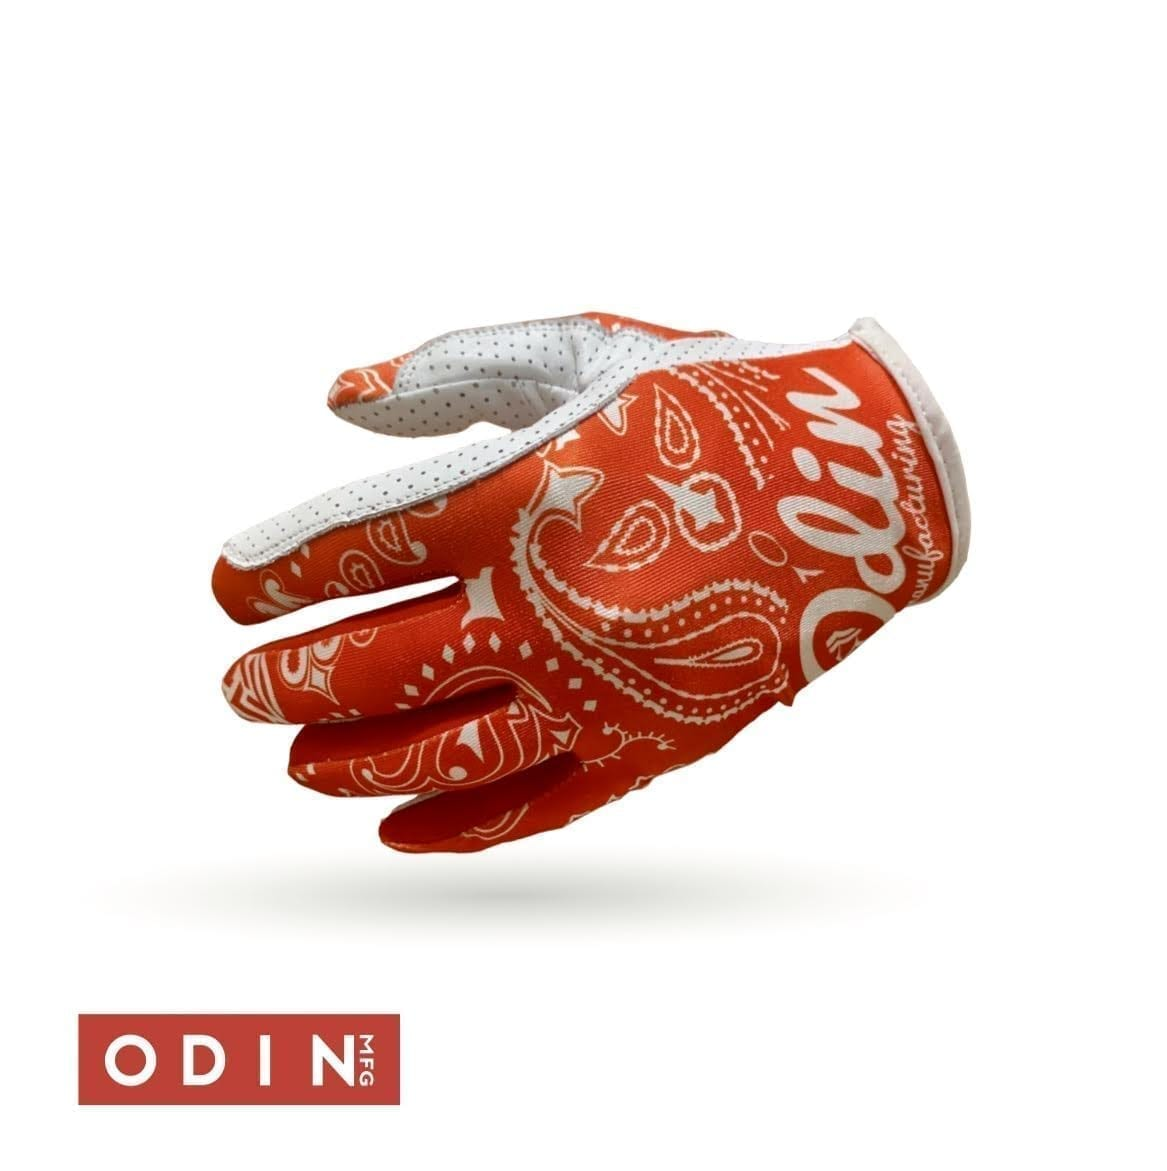 Odin Mfg Paisley red bandana gloves